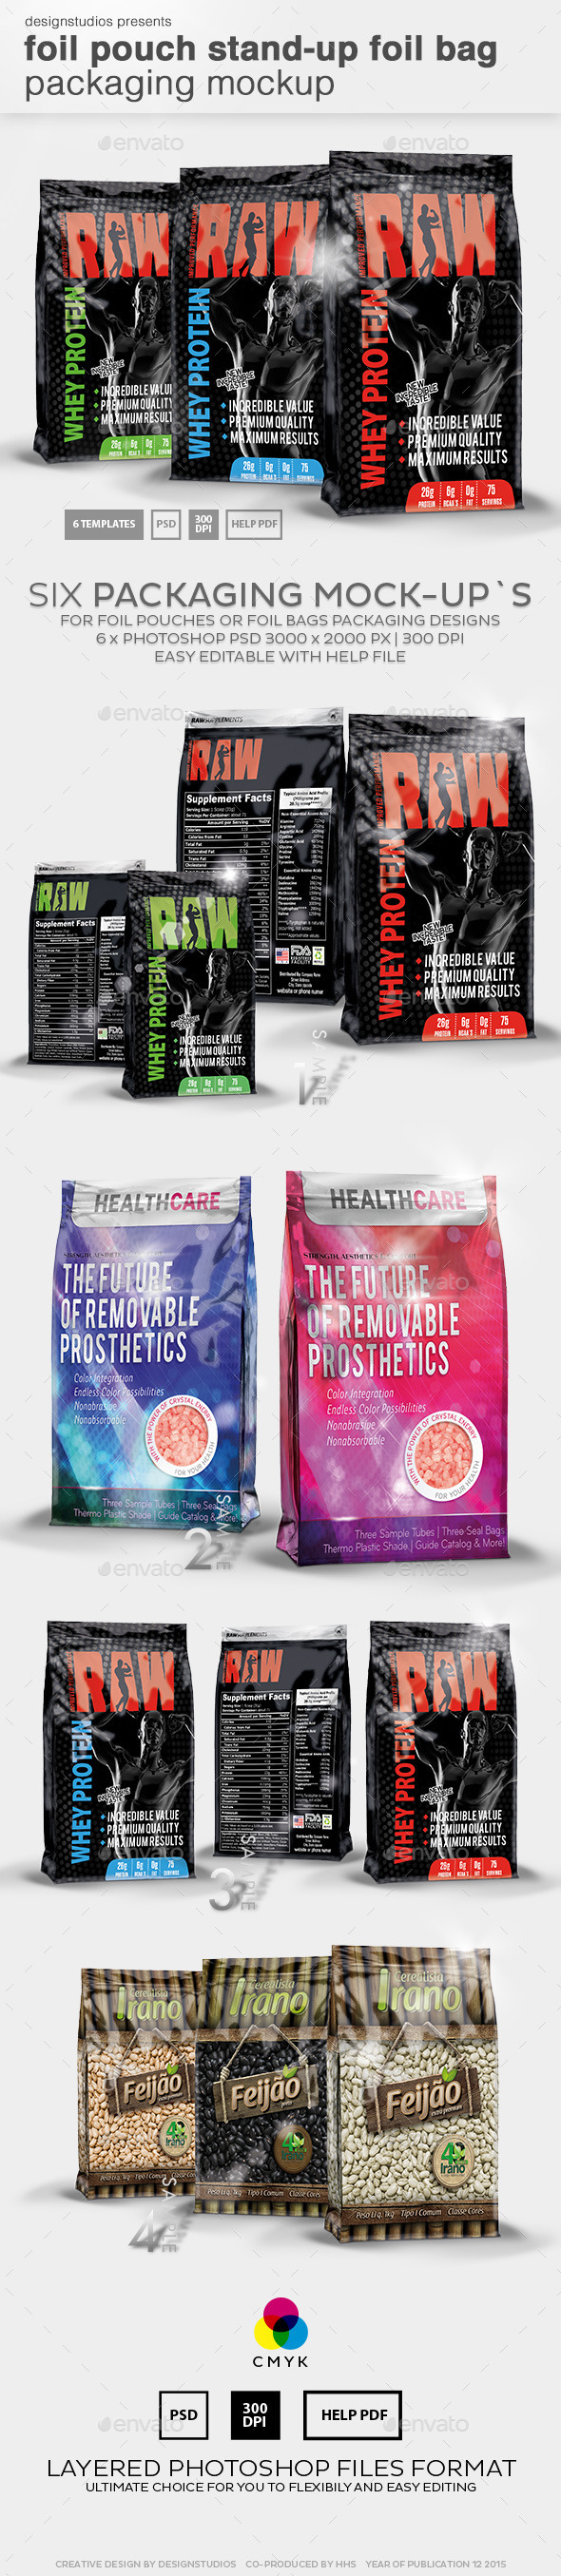 Foil Pouch Stand-Up Foil Bag Packaging Mockup - Product Mock-Ups Graphics